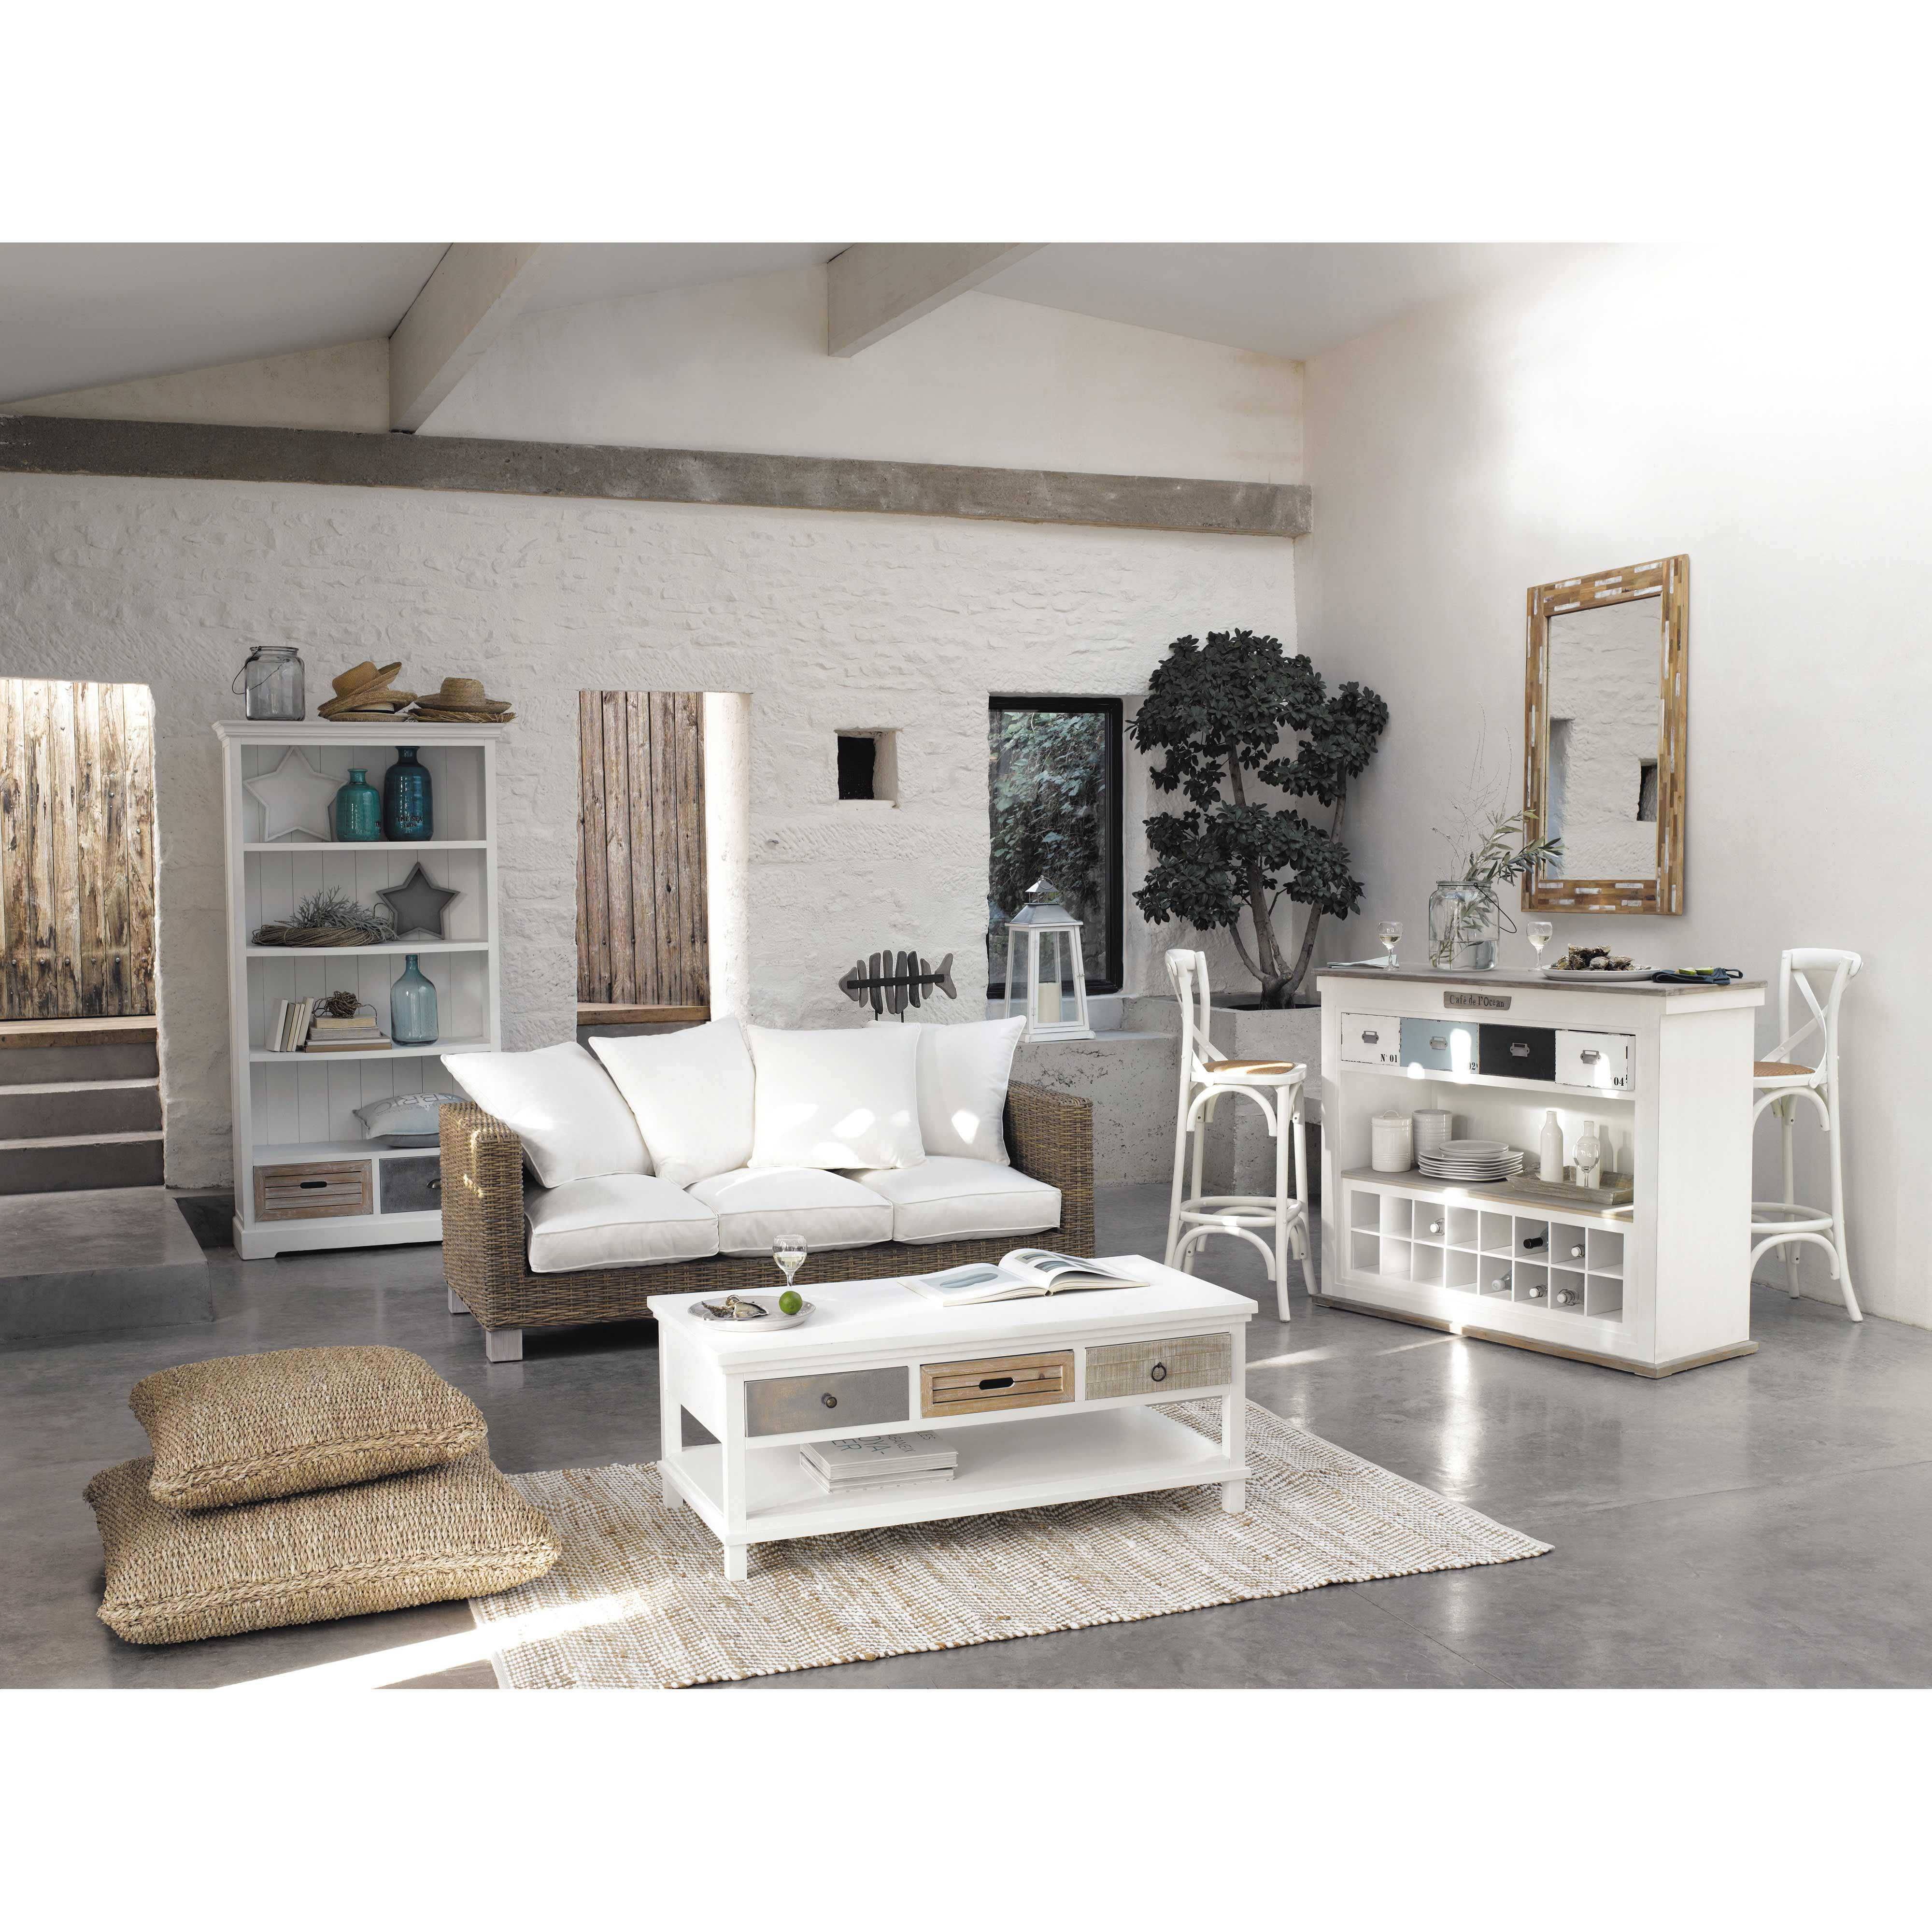 table basse en bois blanche l 120 cm tables basses en bois ouessant et bois blanc. Black Bedroom Furniture Sets. Home Design Ideas